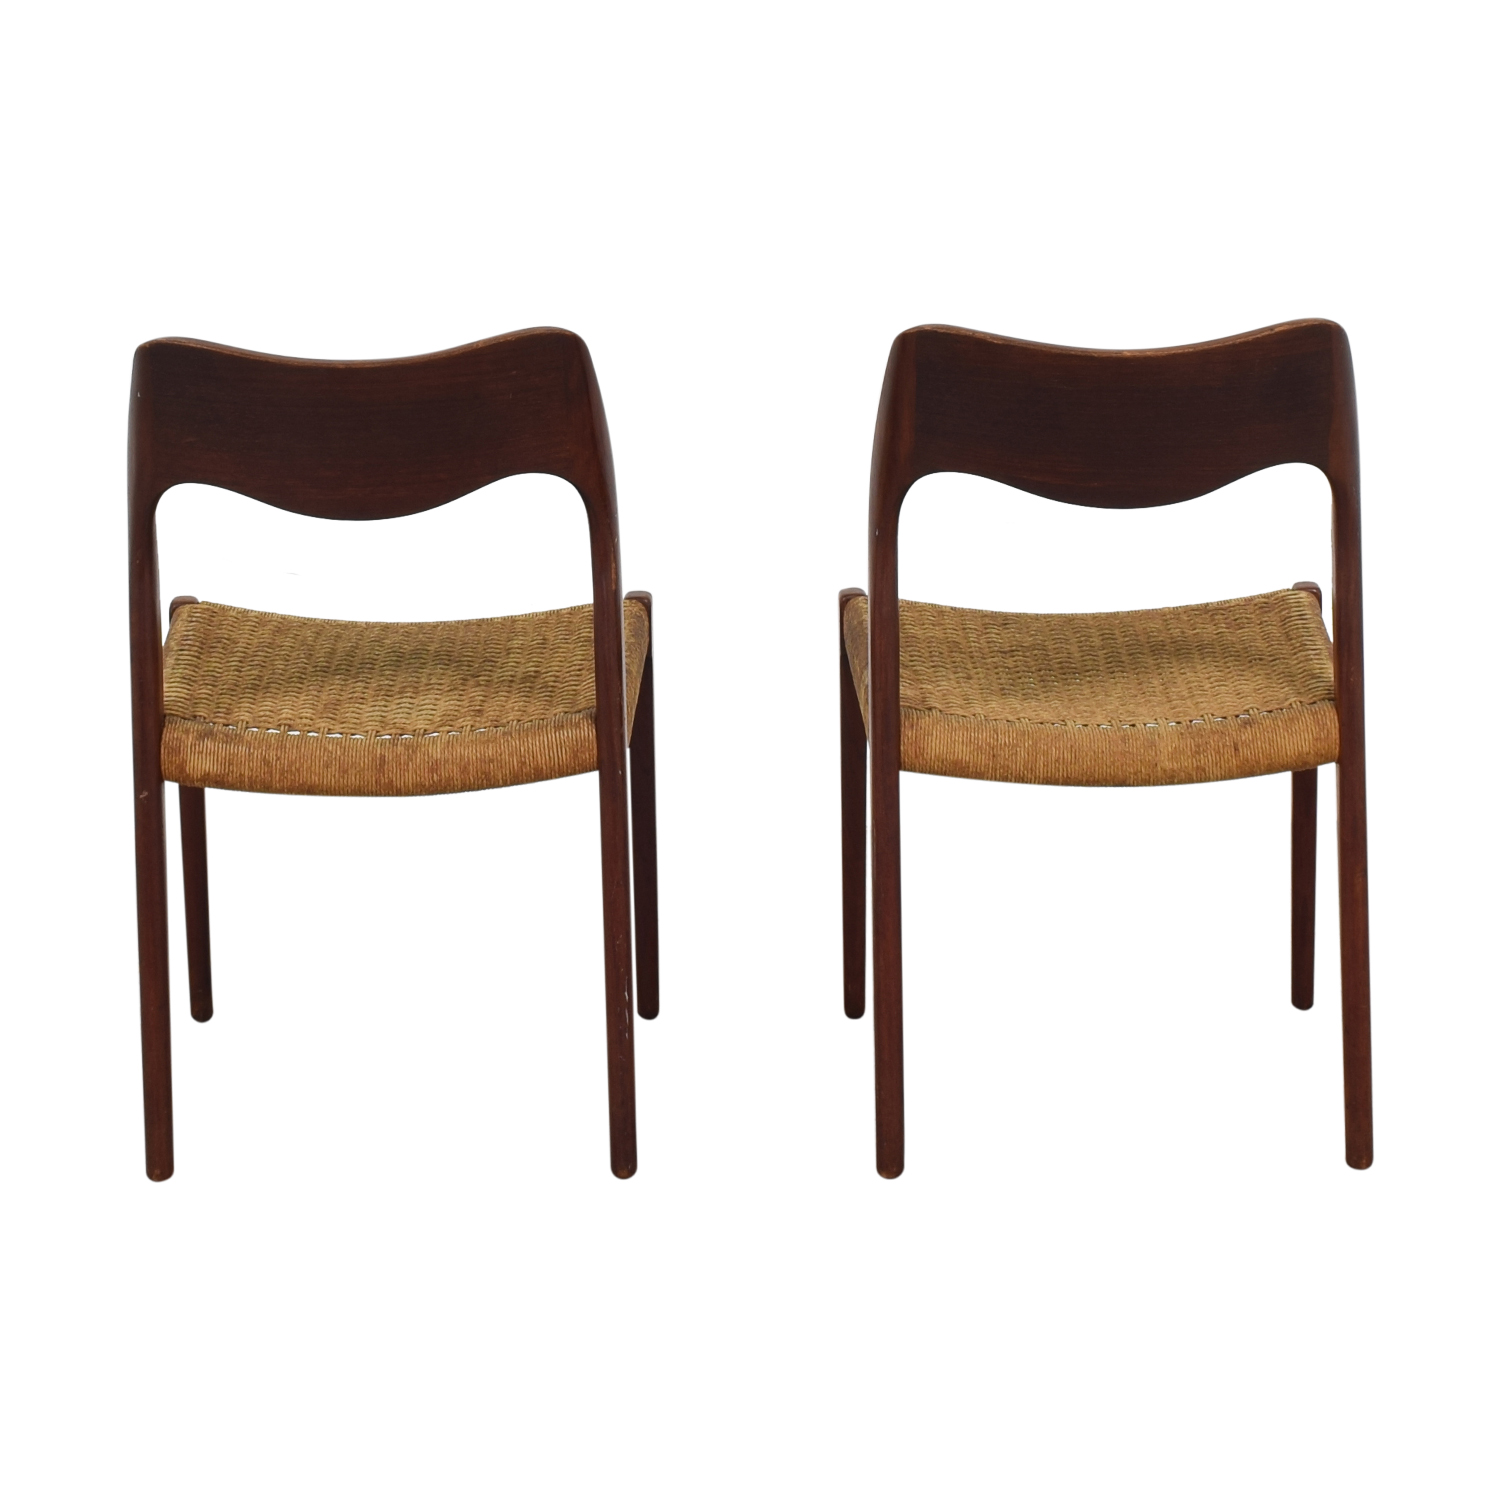 Vamouse Designer Antique Chairs used